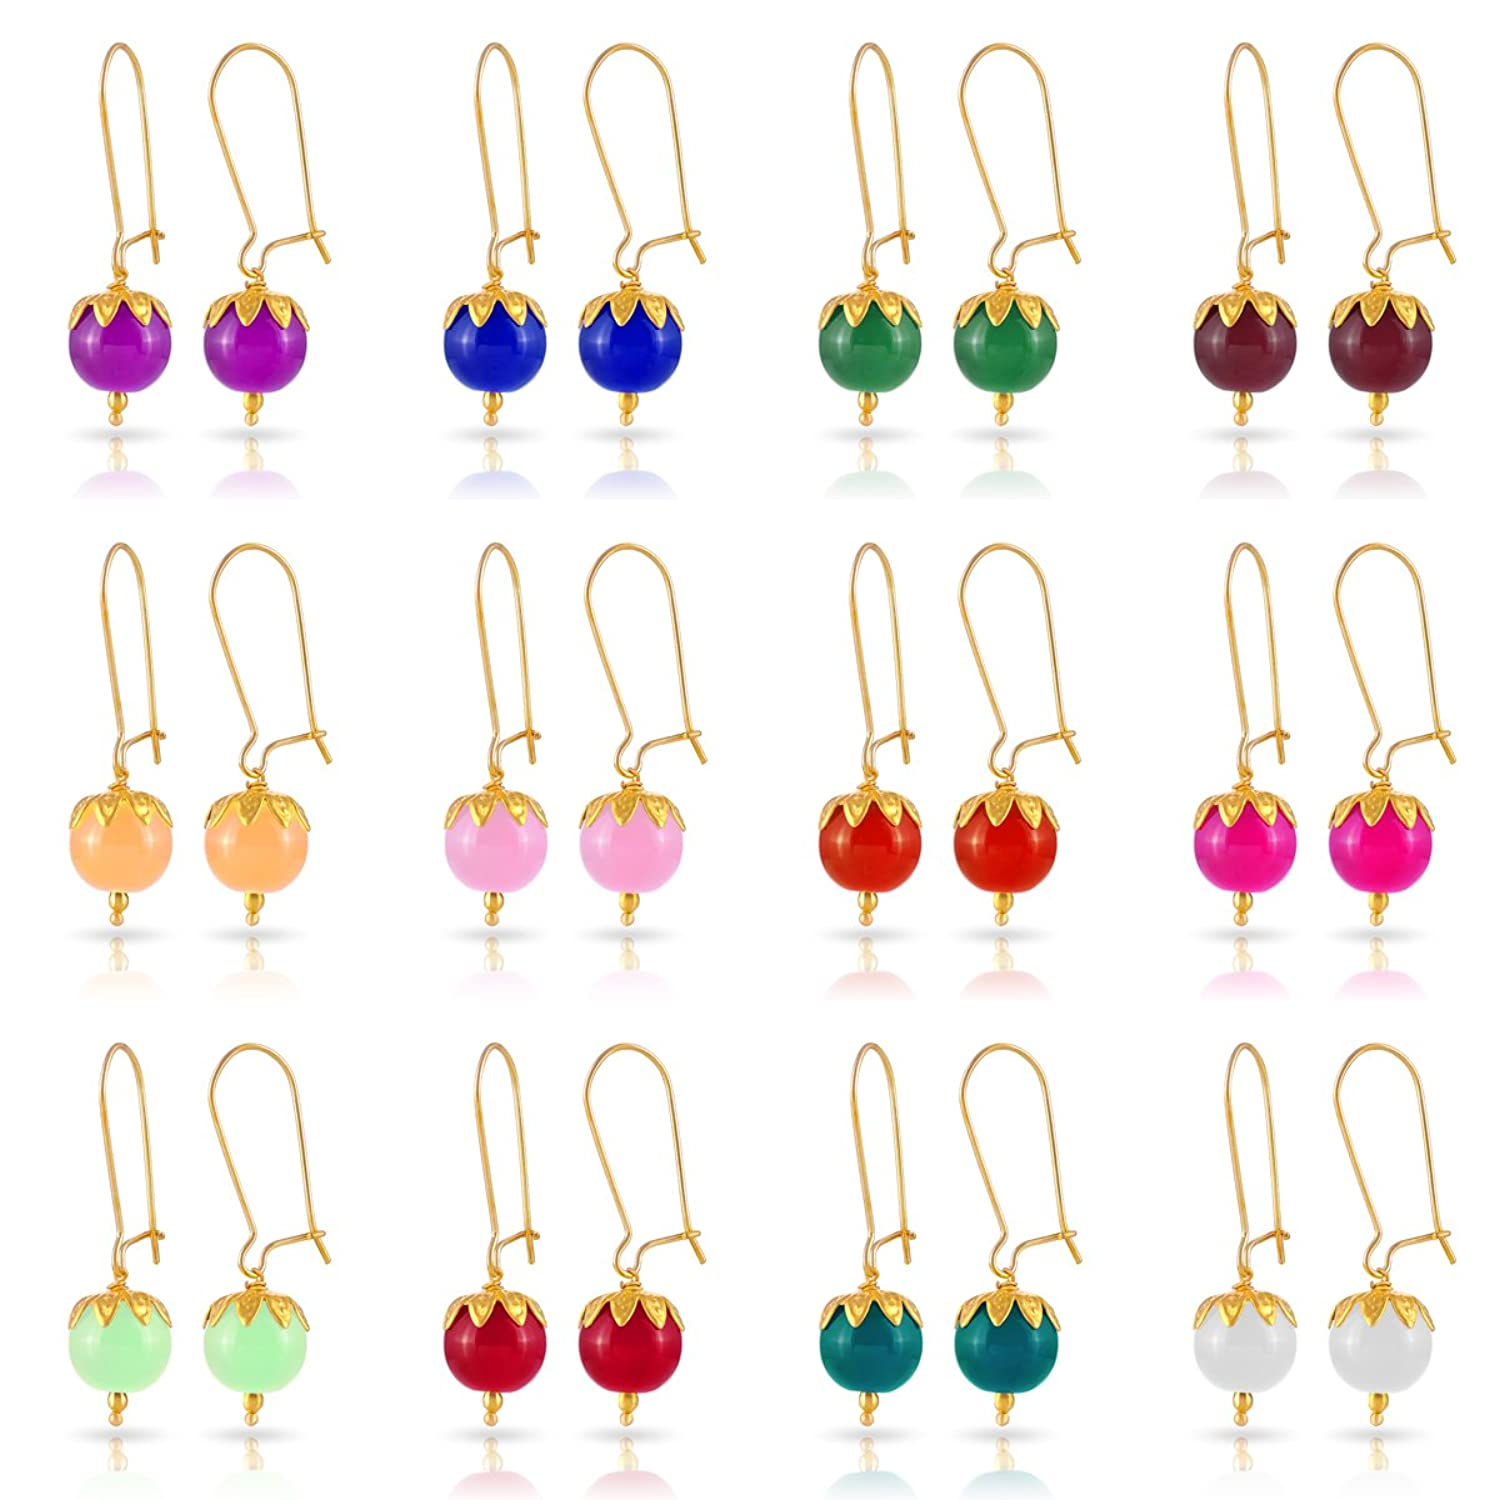 12 Pairs Of Kiwi Kreation Handmade Earrings For Girls And Women Daily Wear